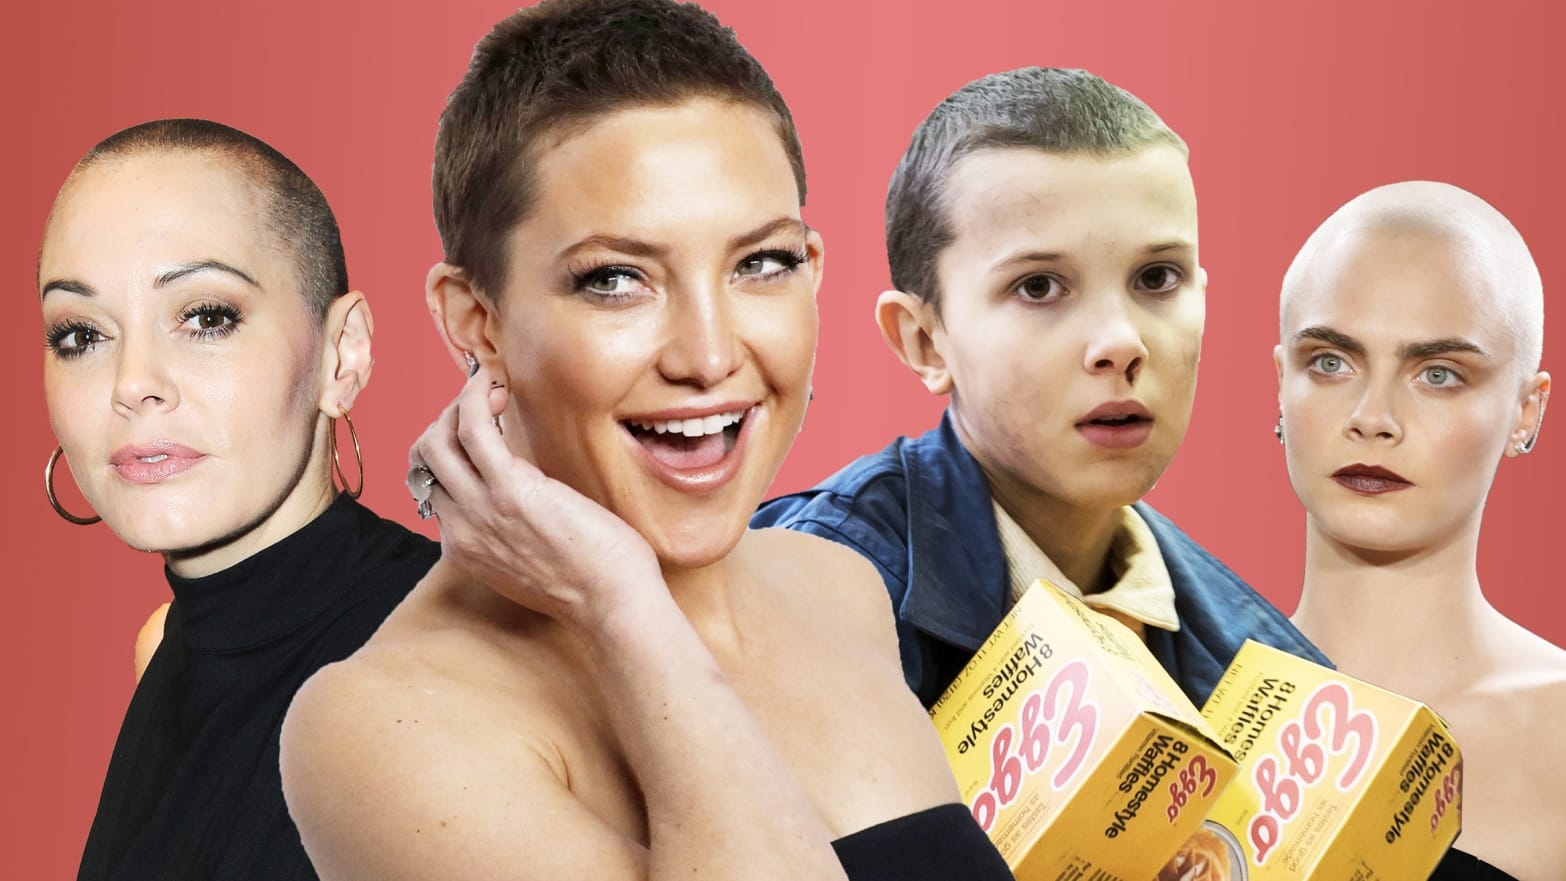 buzz cuts are the ultimate sign of female power